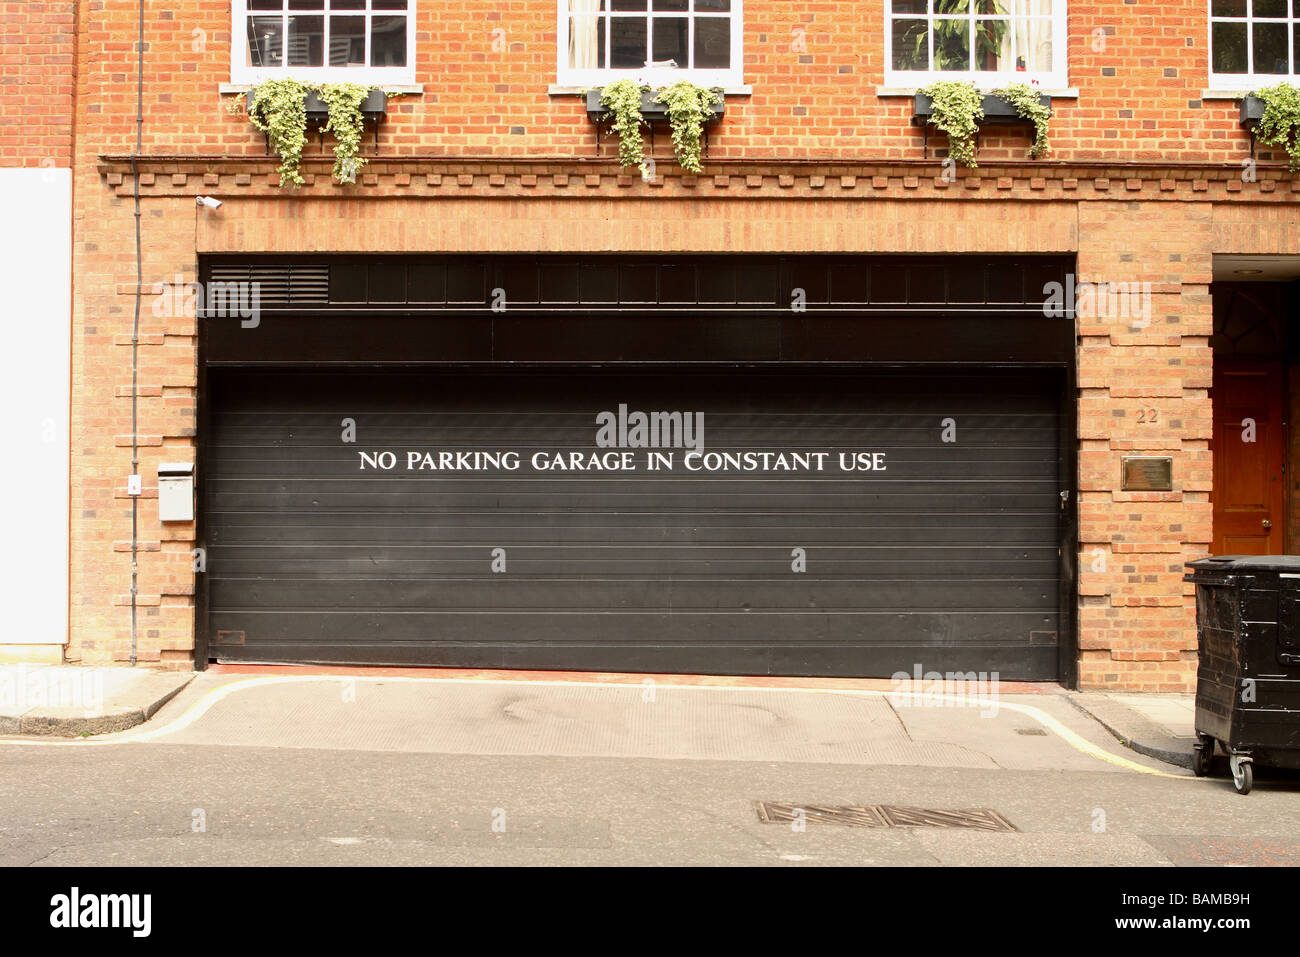 London no parking garage in constant use warning sign on